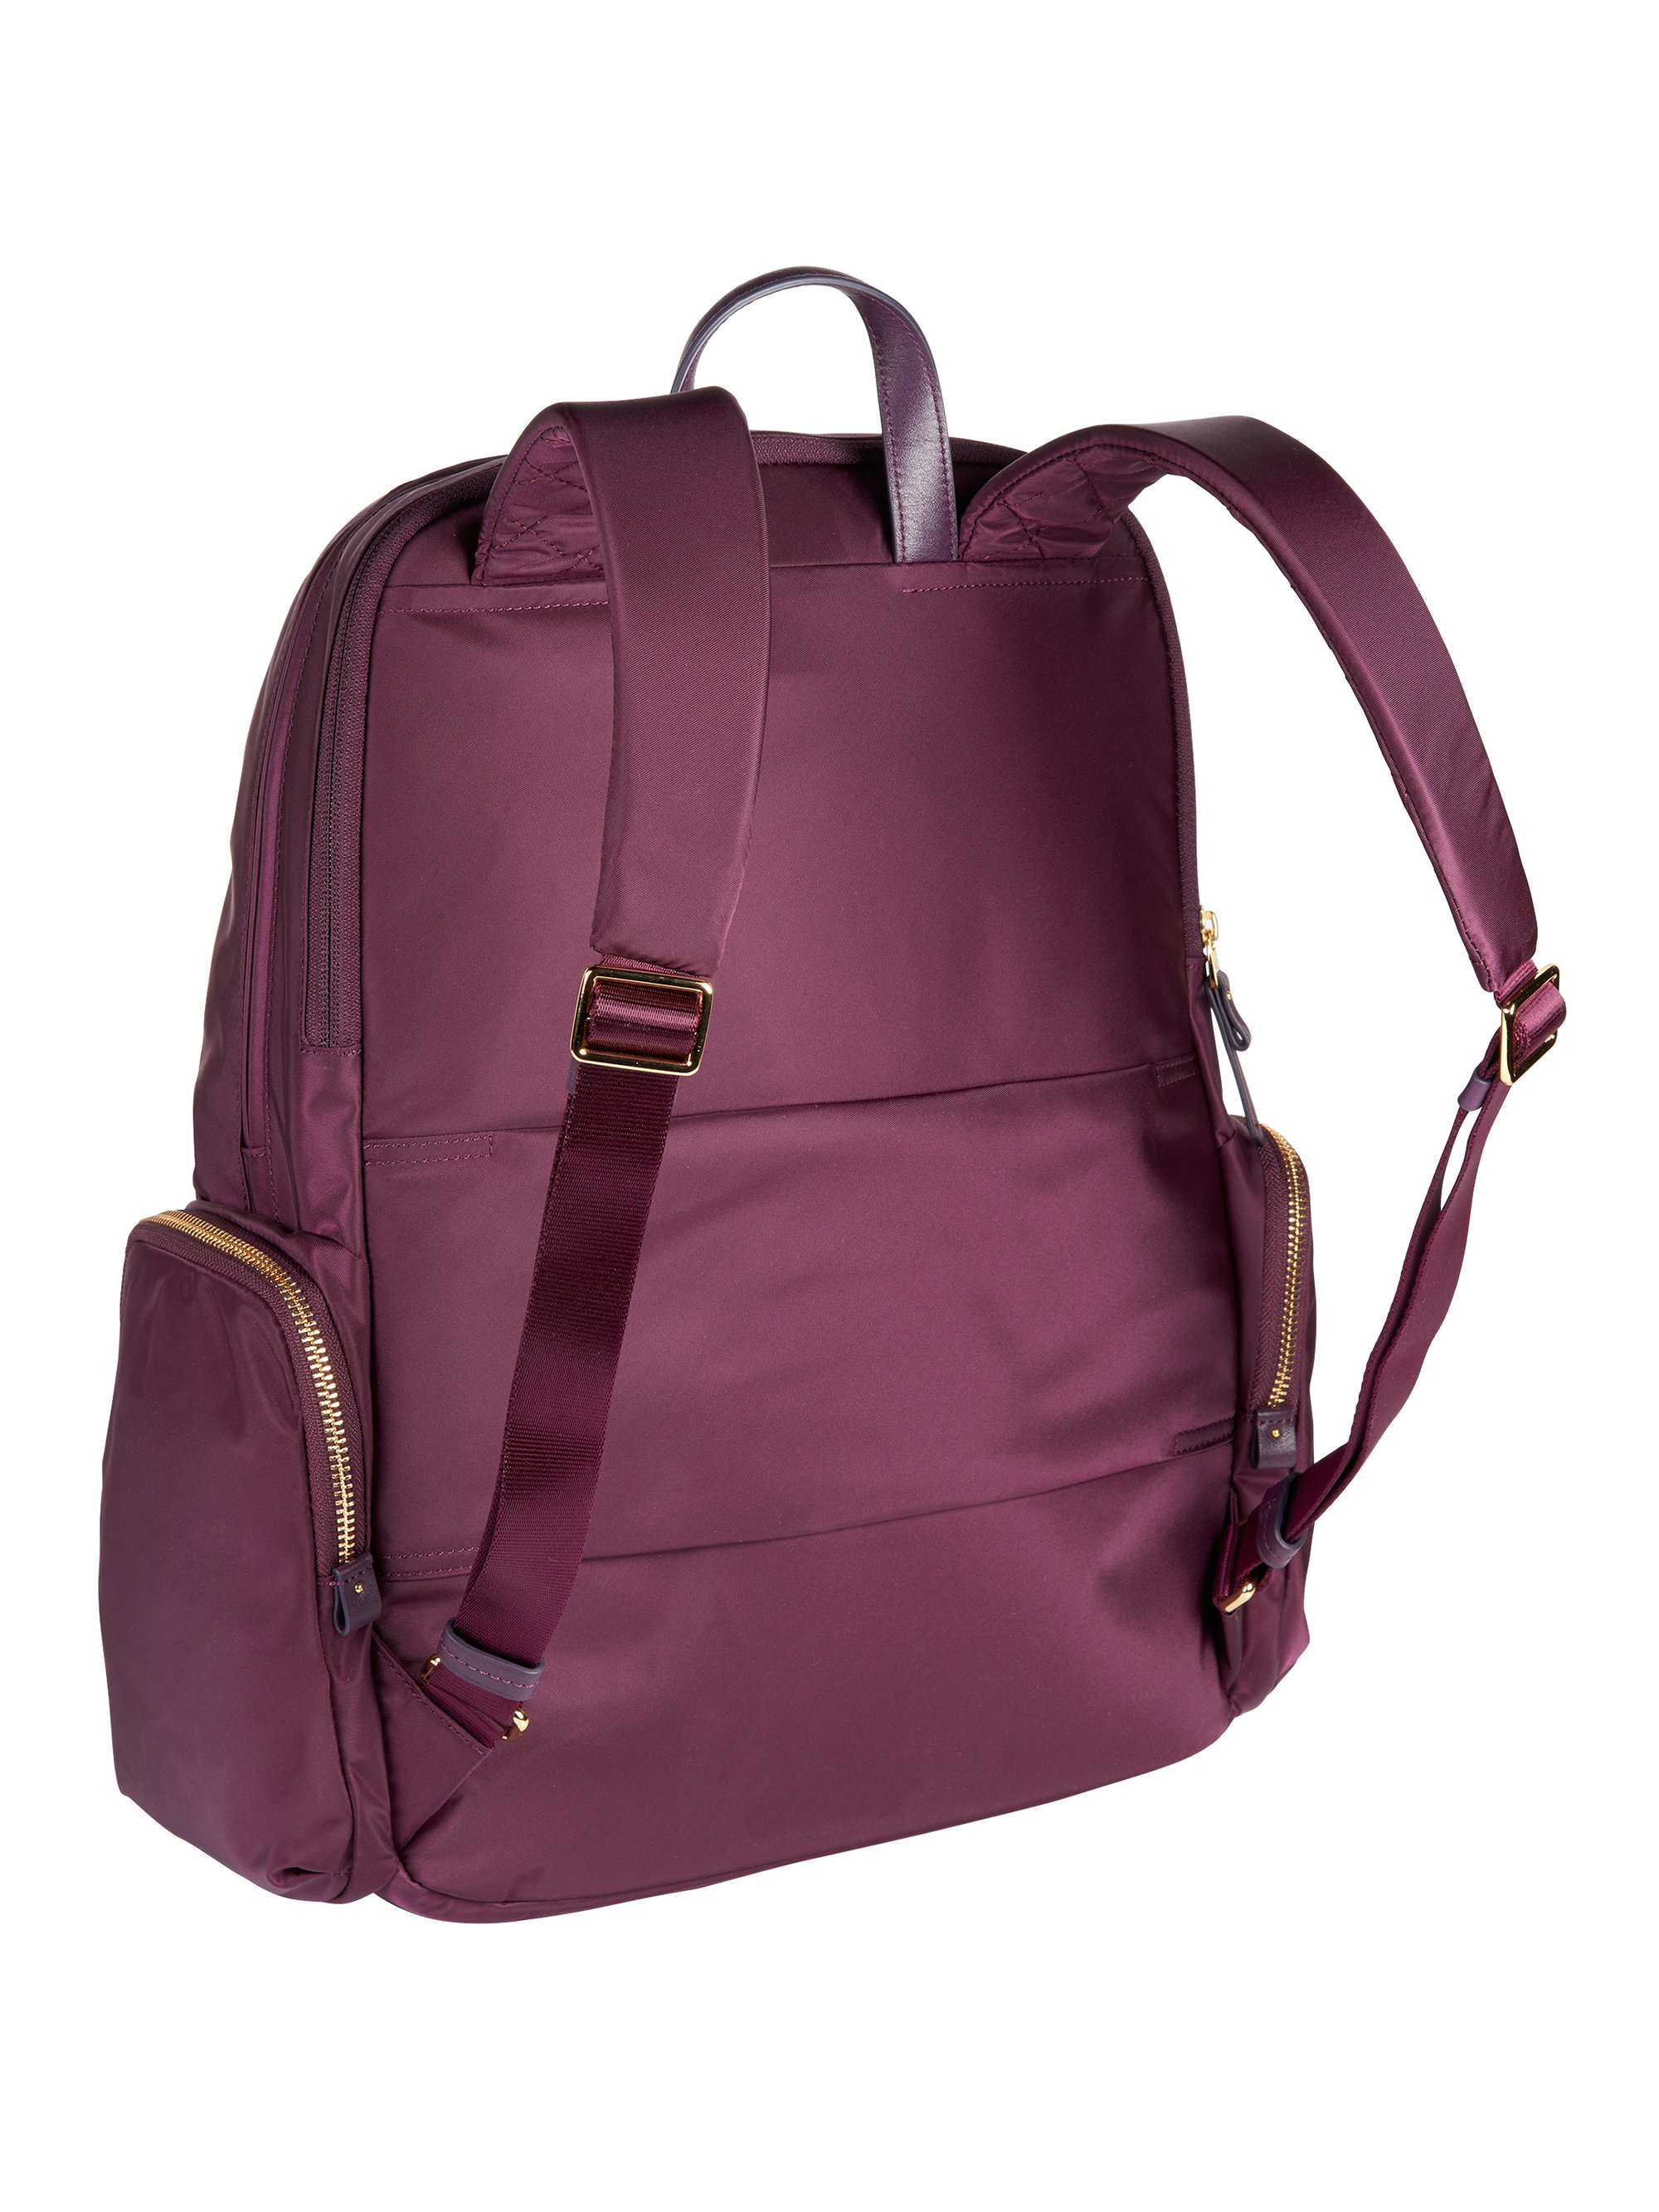 Tumi Voyageur Calais Backpack In Purple For Men Lyst